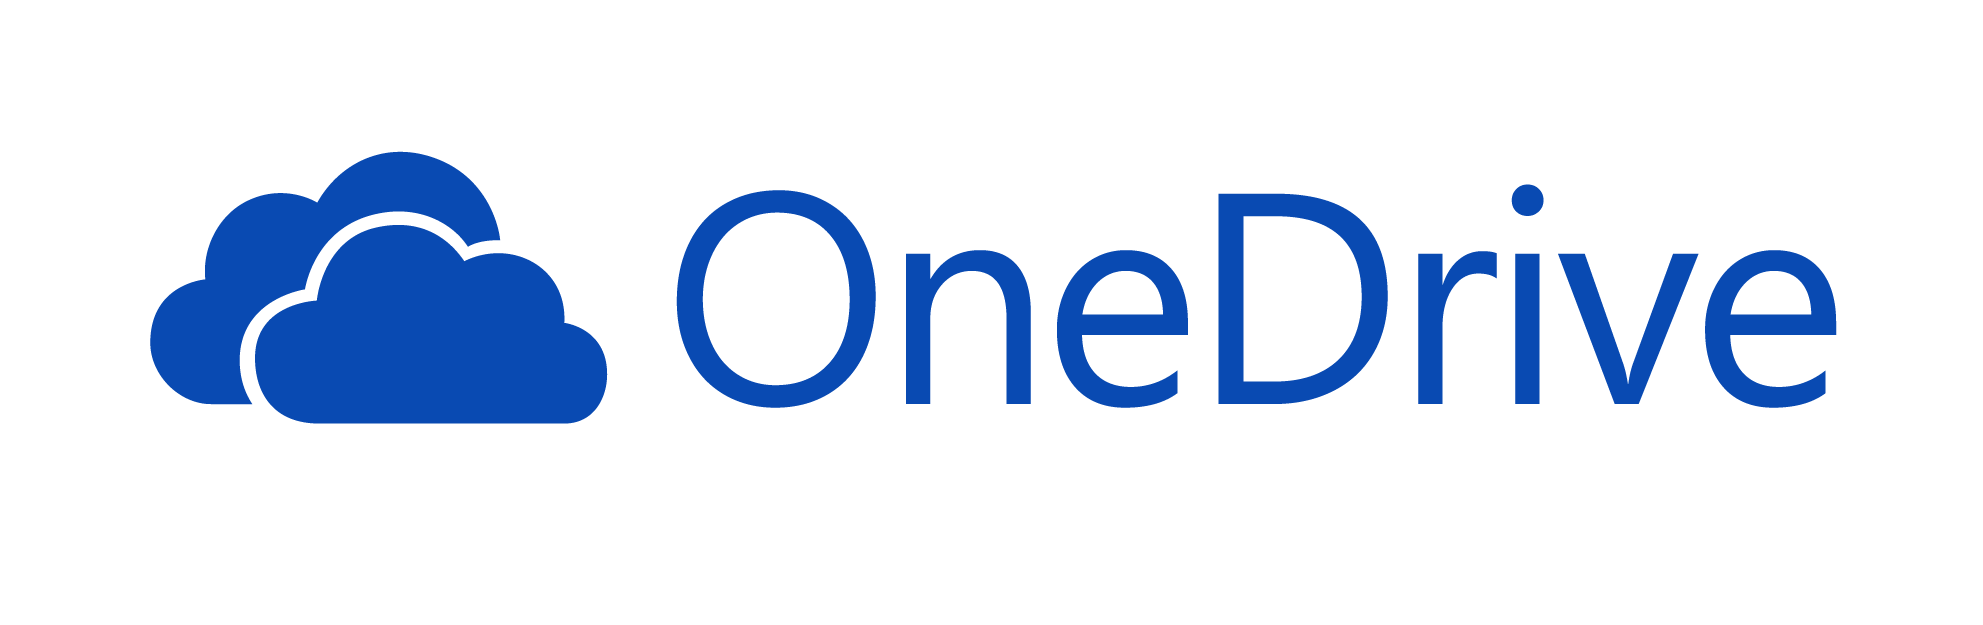 Global printing from Onedrive